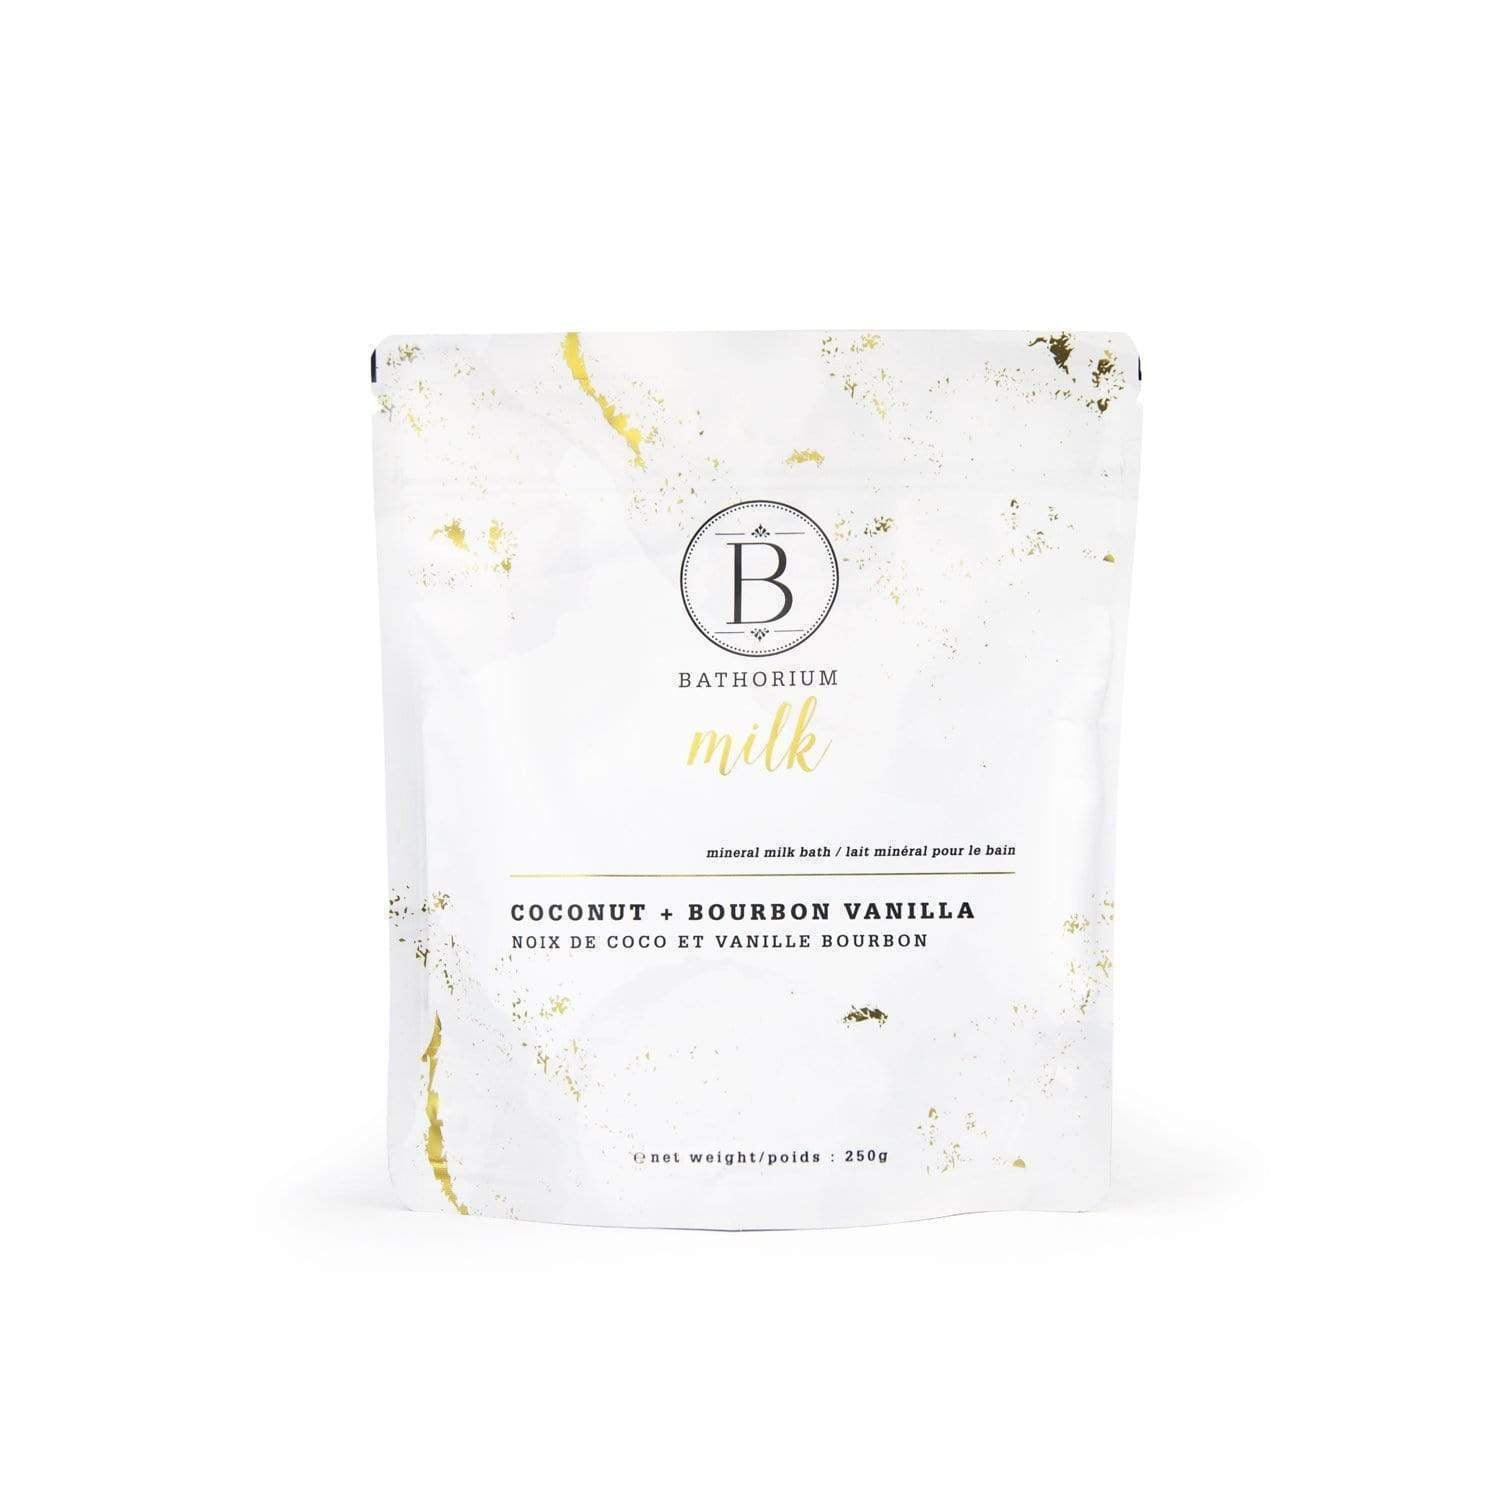 BATHORIUM- MILK COCONUT + VANILLA MINERAL BATH SOAK